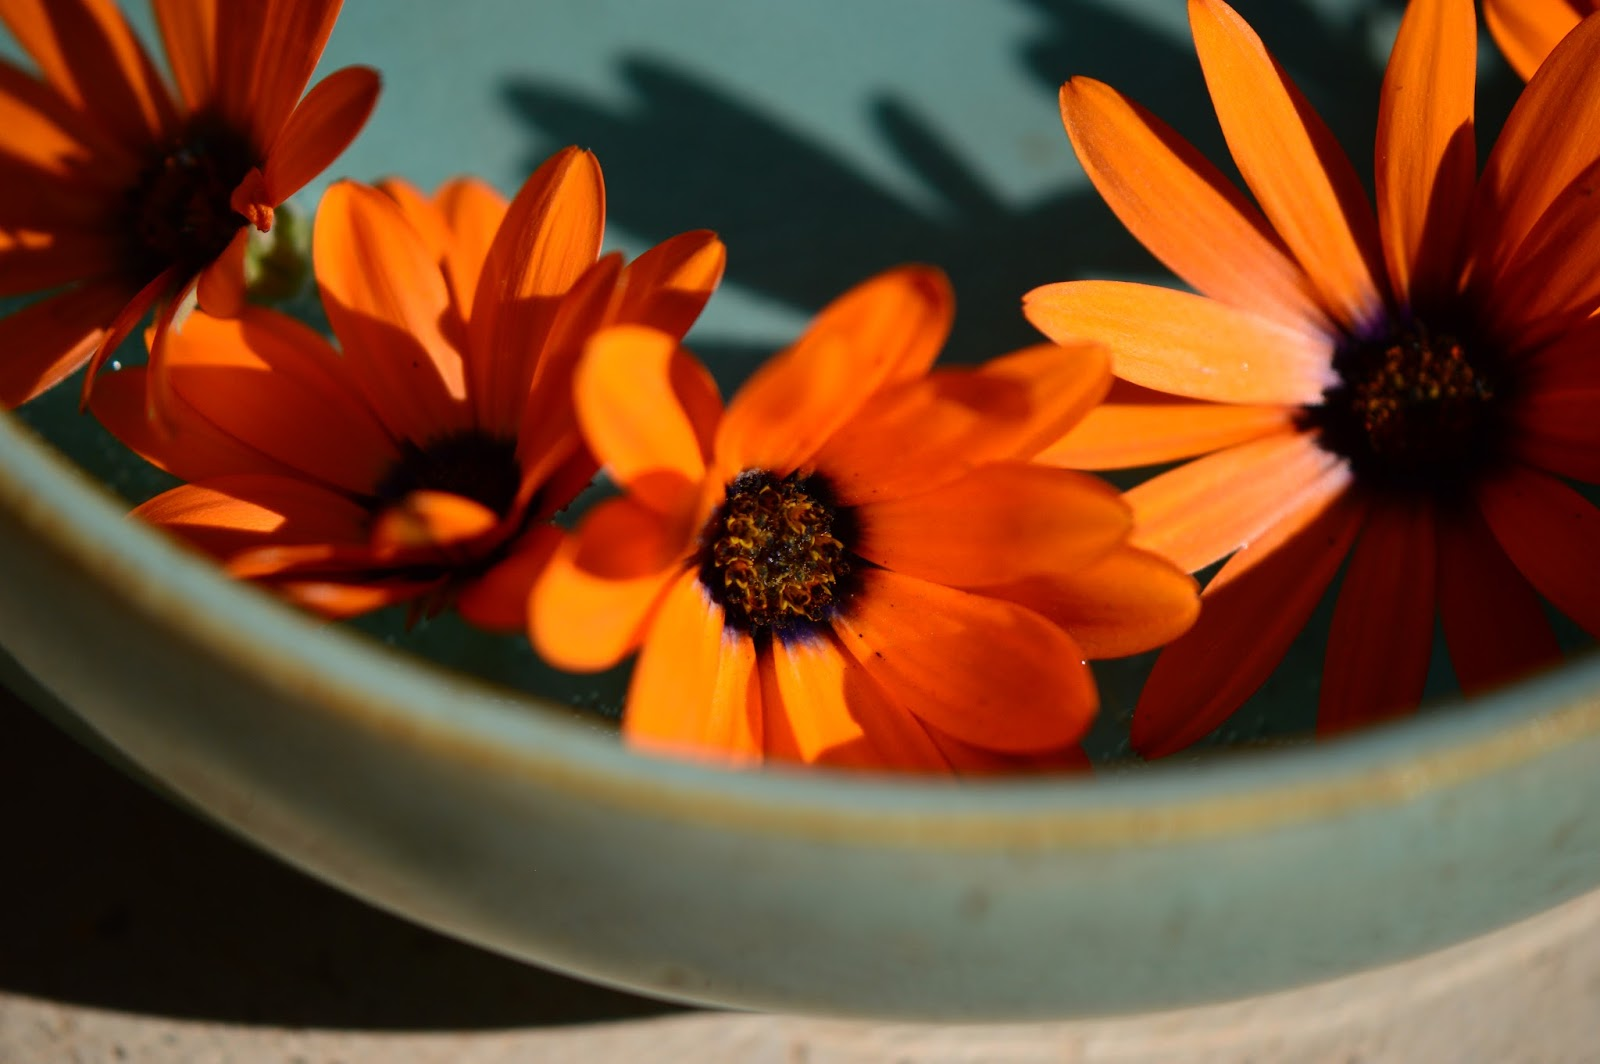 osteospermum, monday vase meme, ceramics by amy myers